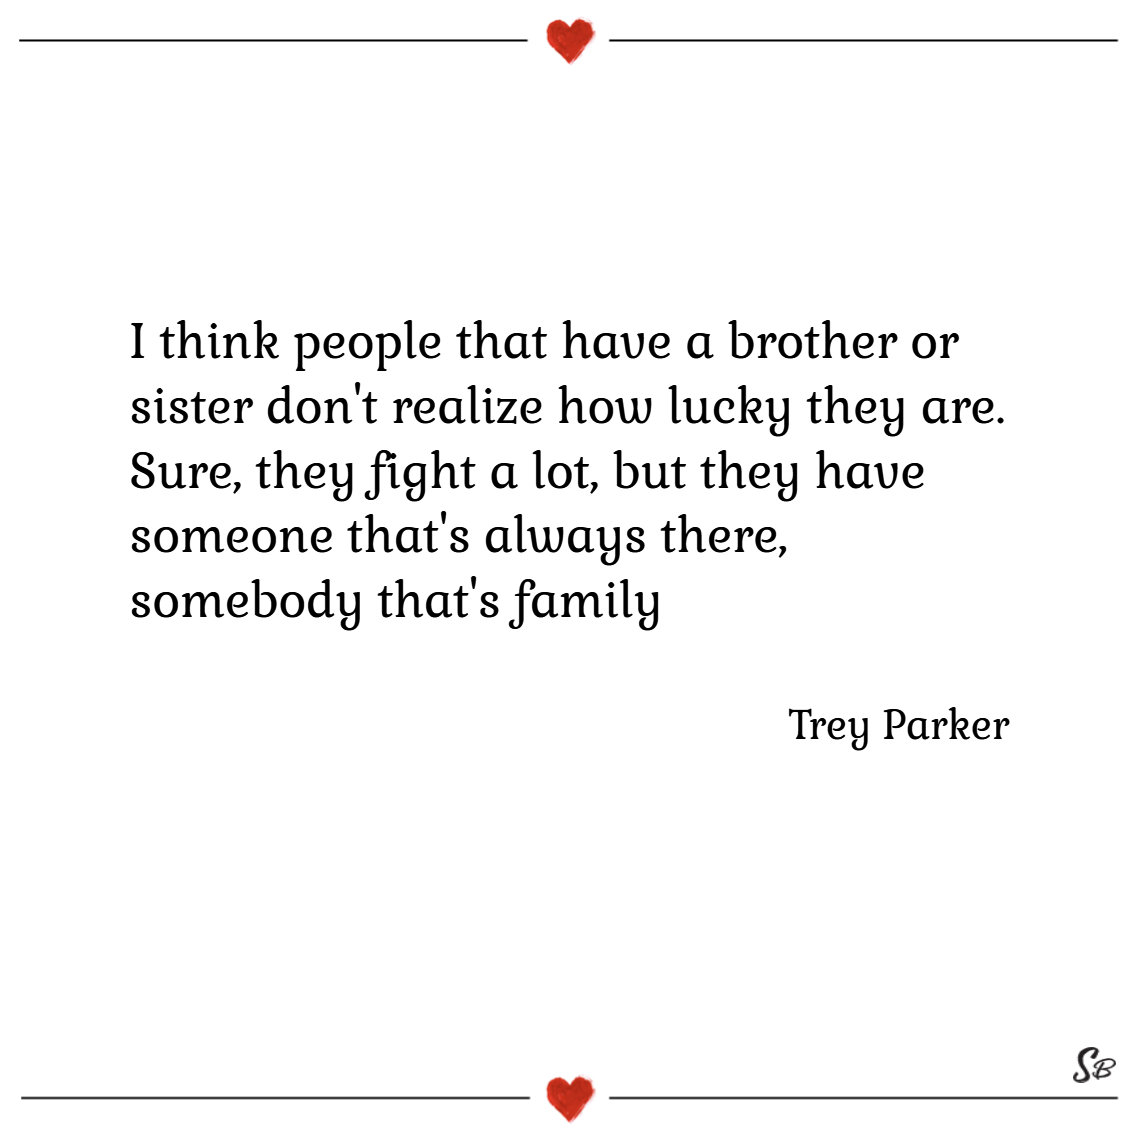 I think people that have a brother or sister don't realize how lucky they are. sure, they fight a lot, but they have someone that's always somebody there, somebody that's family. – trey parker